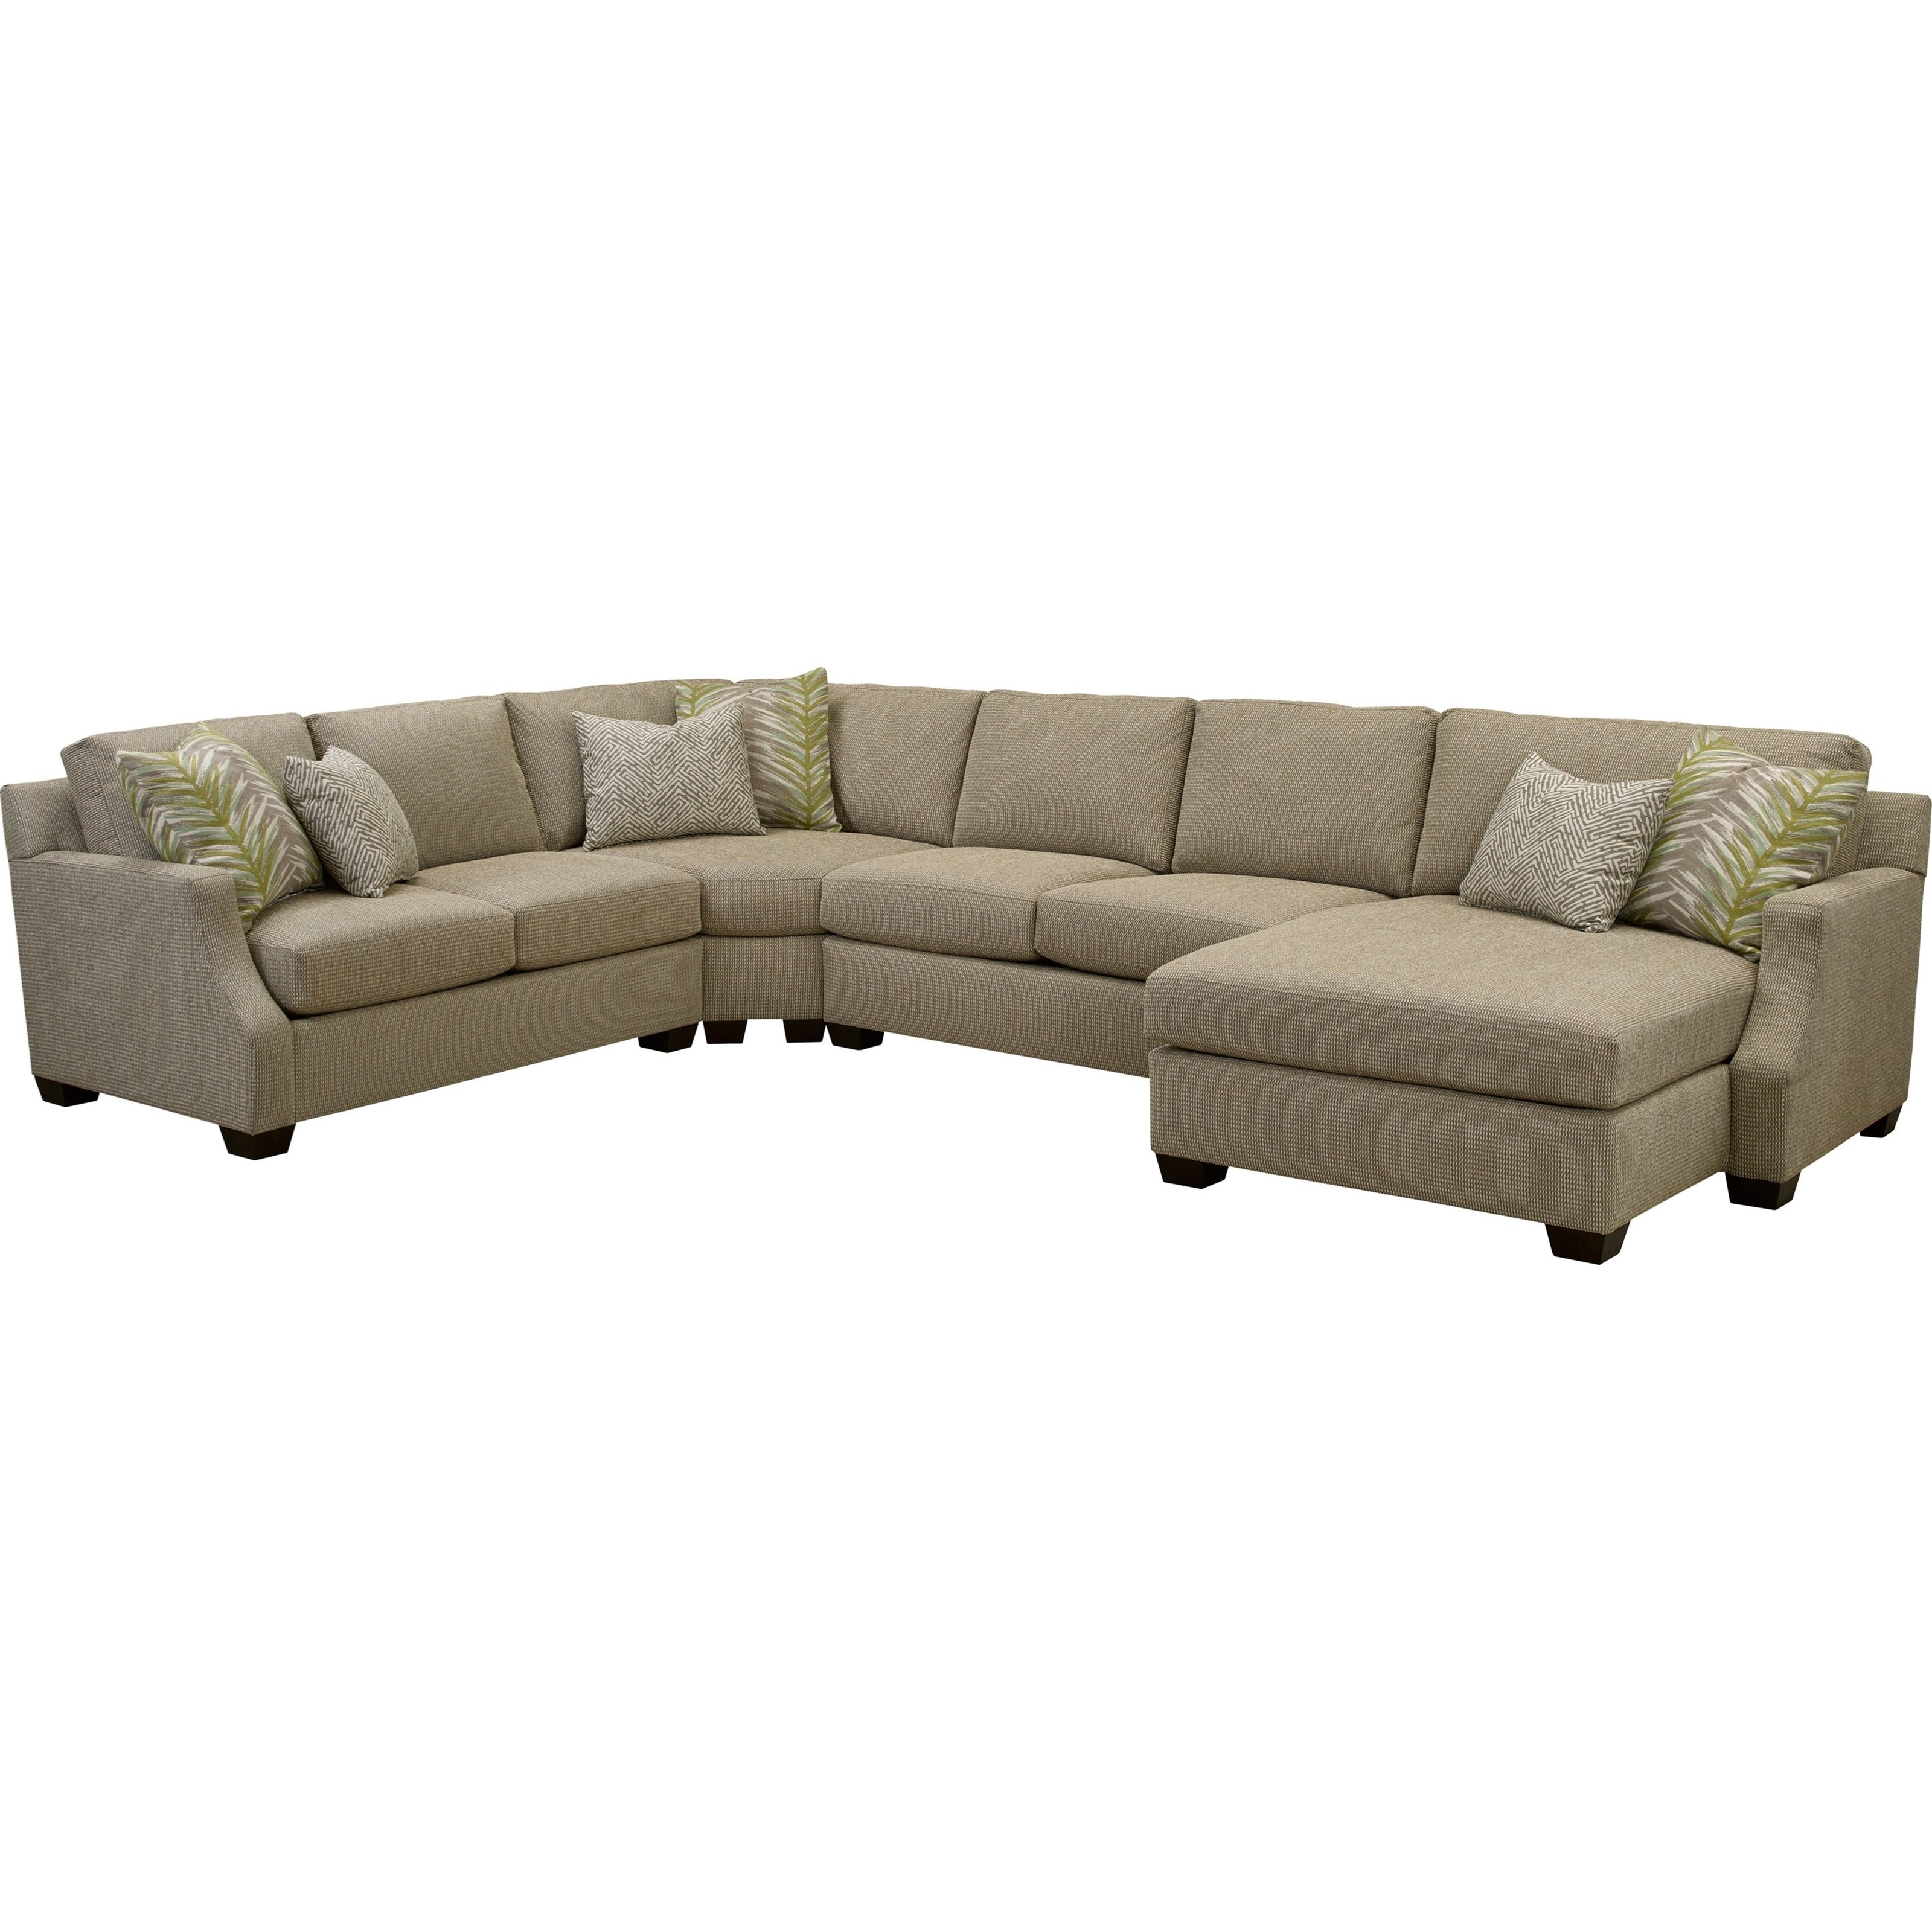 Broyhill Furniture Chambers Large 4 Pc (View 1 of 20)